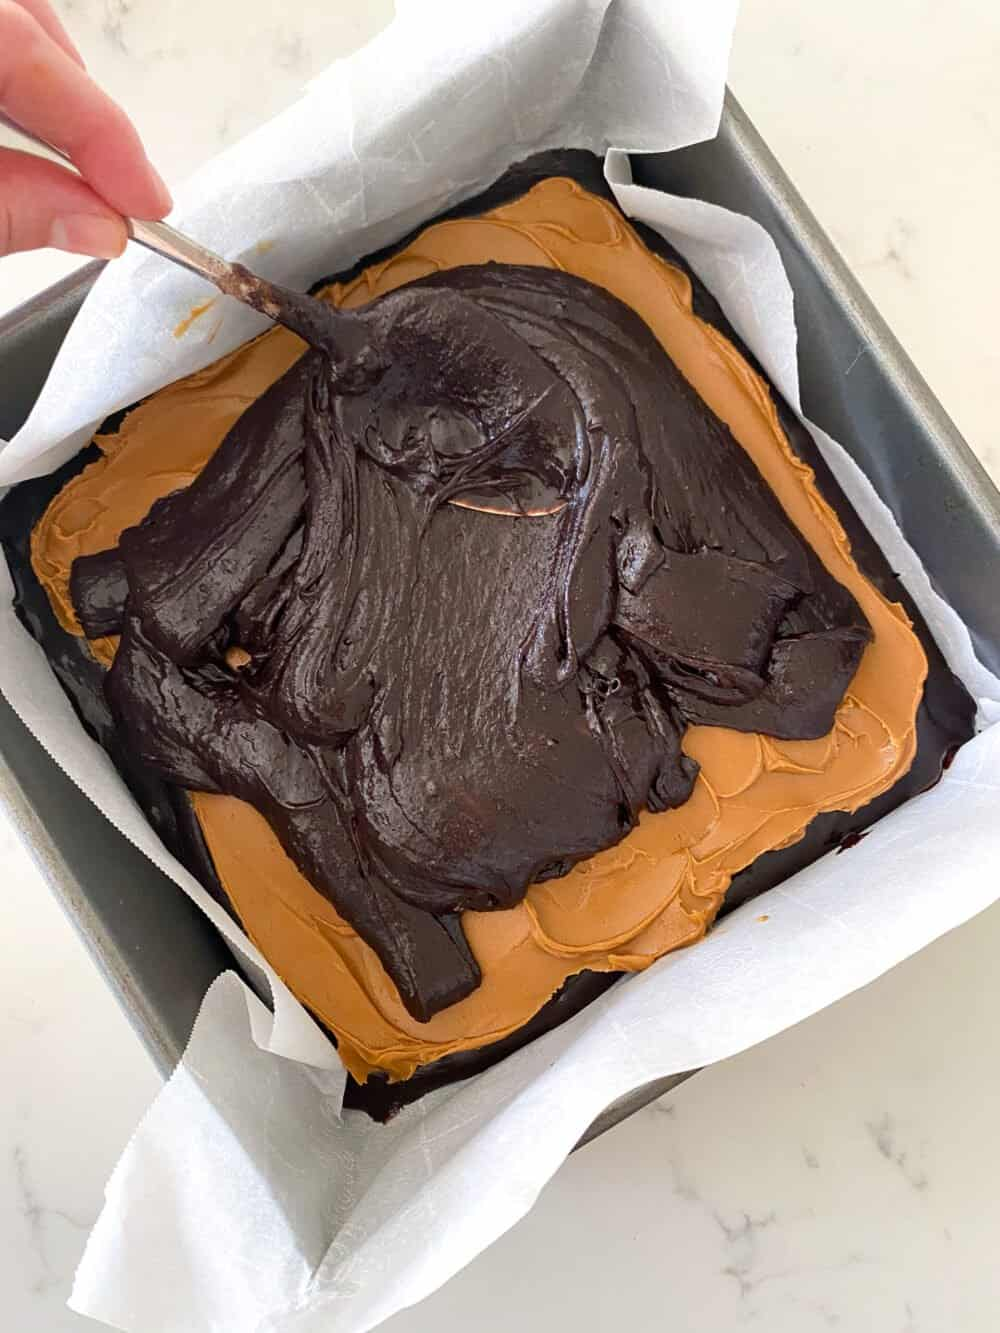 pour remaining brownie batter on top